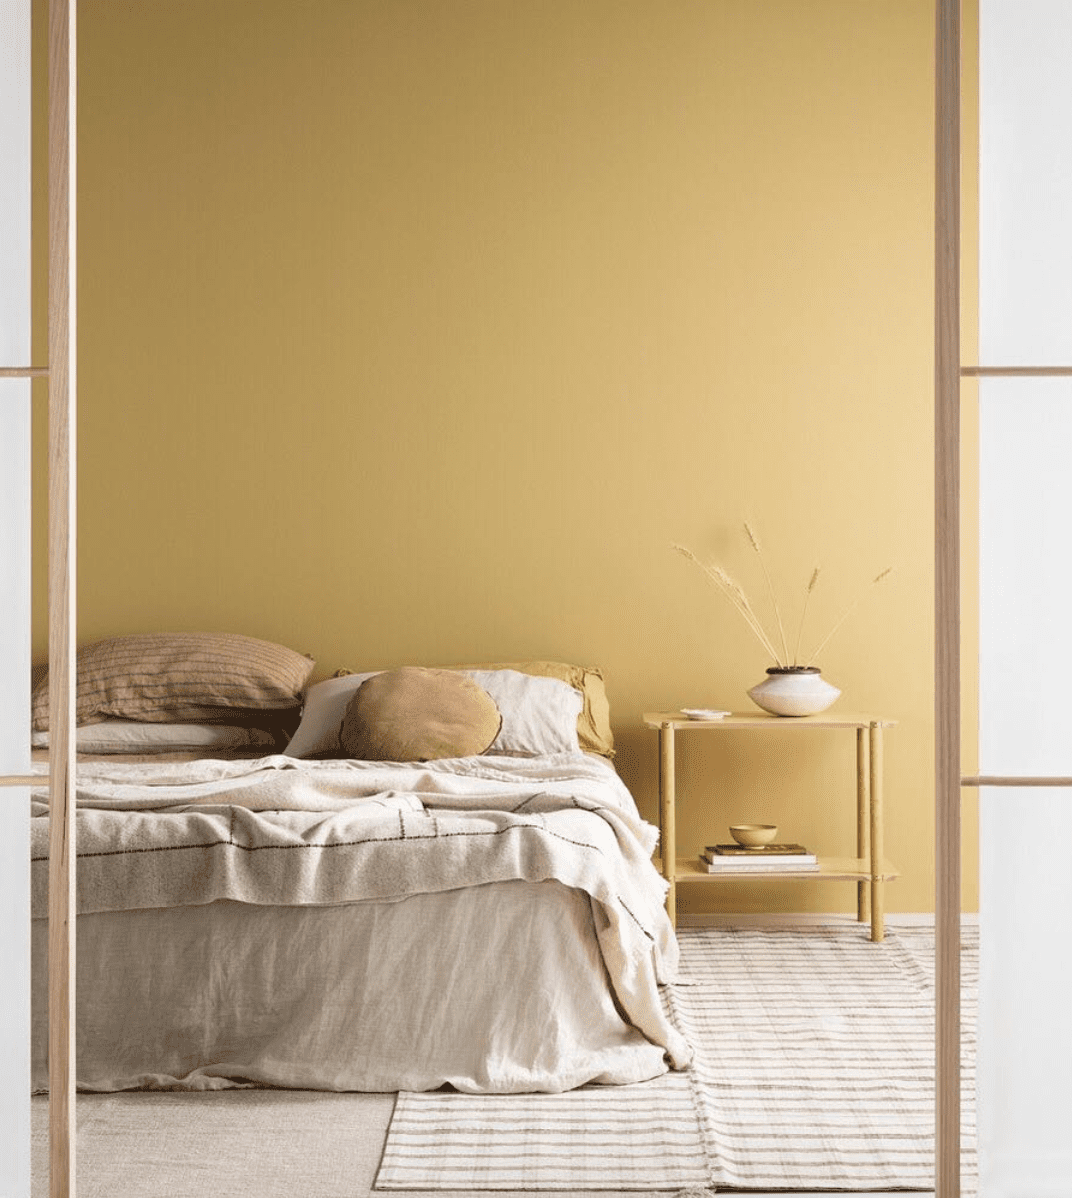 Clear entryway to minimalist bedroom in soft rolled hay yellows